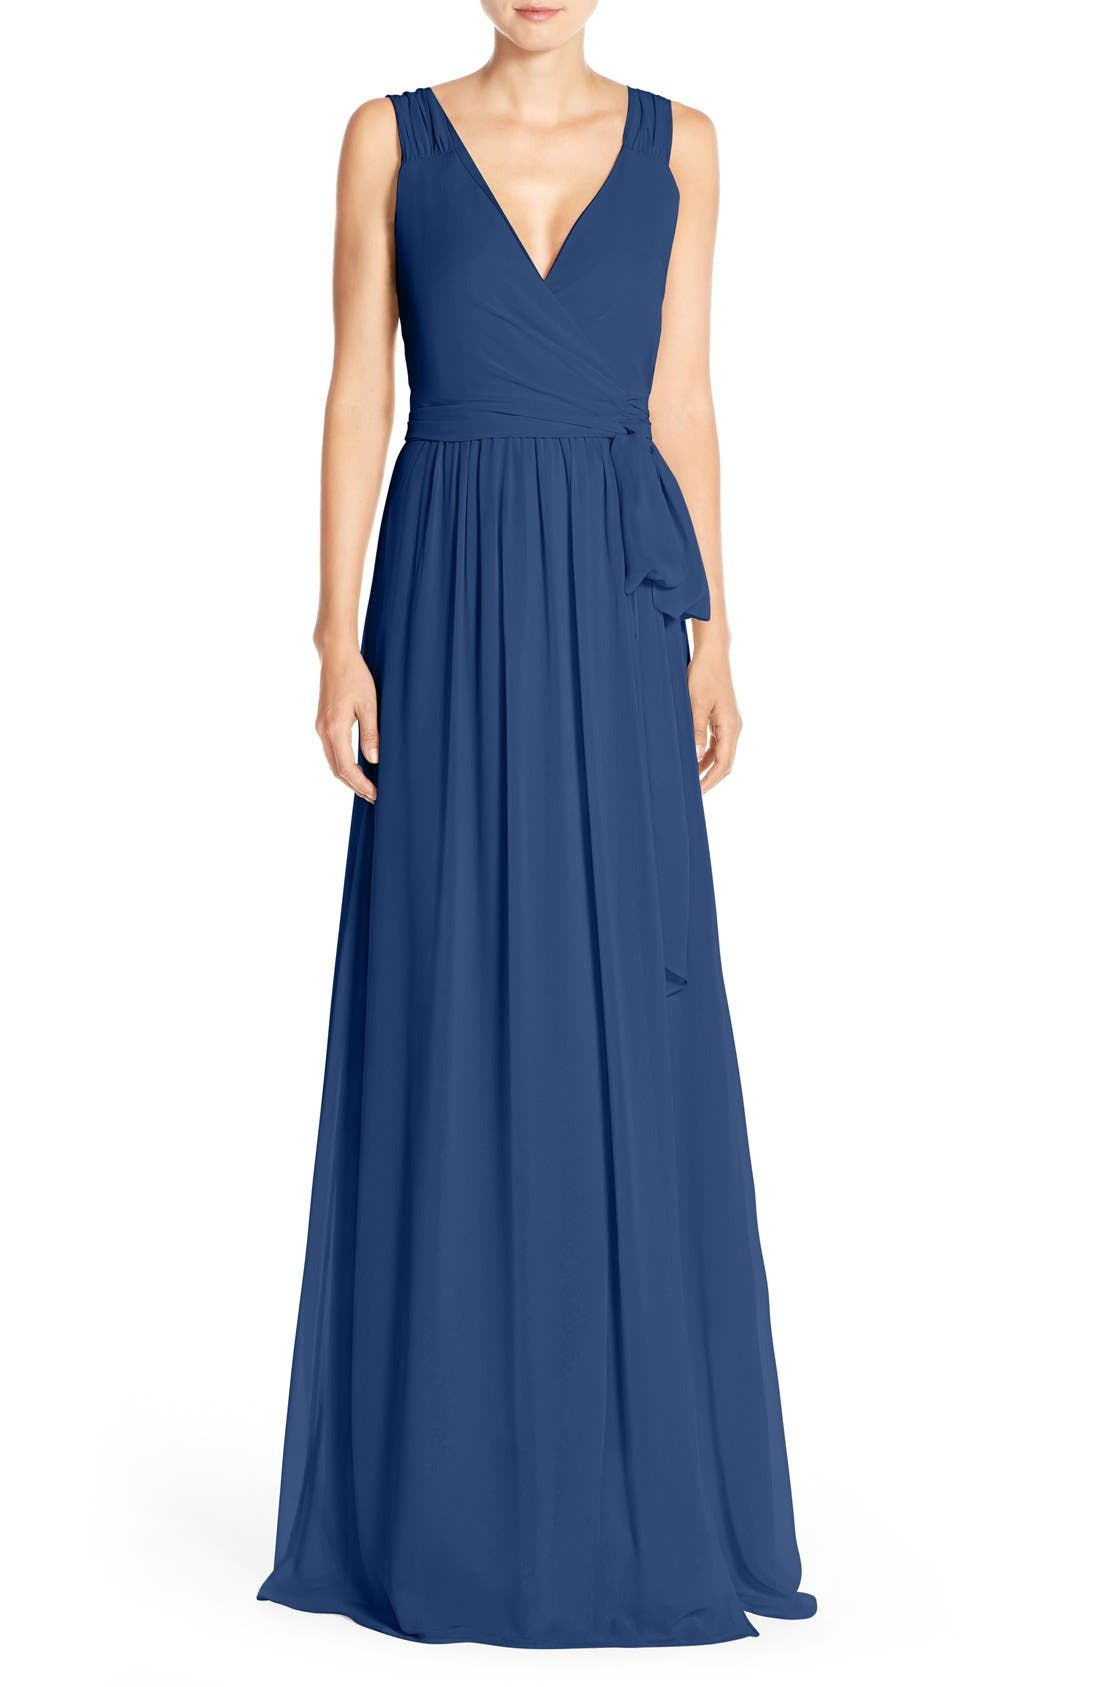 Ceremony by Joanna August 'Newbury' Gathered Sleeve Chiffon Wrap Gown